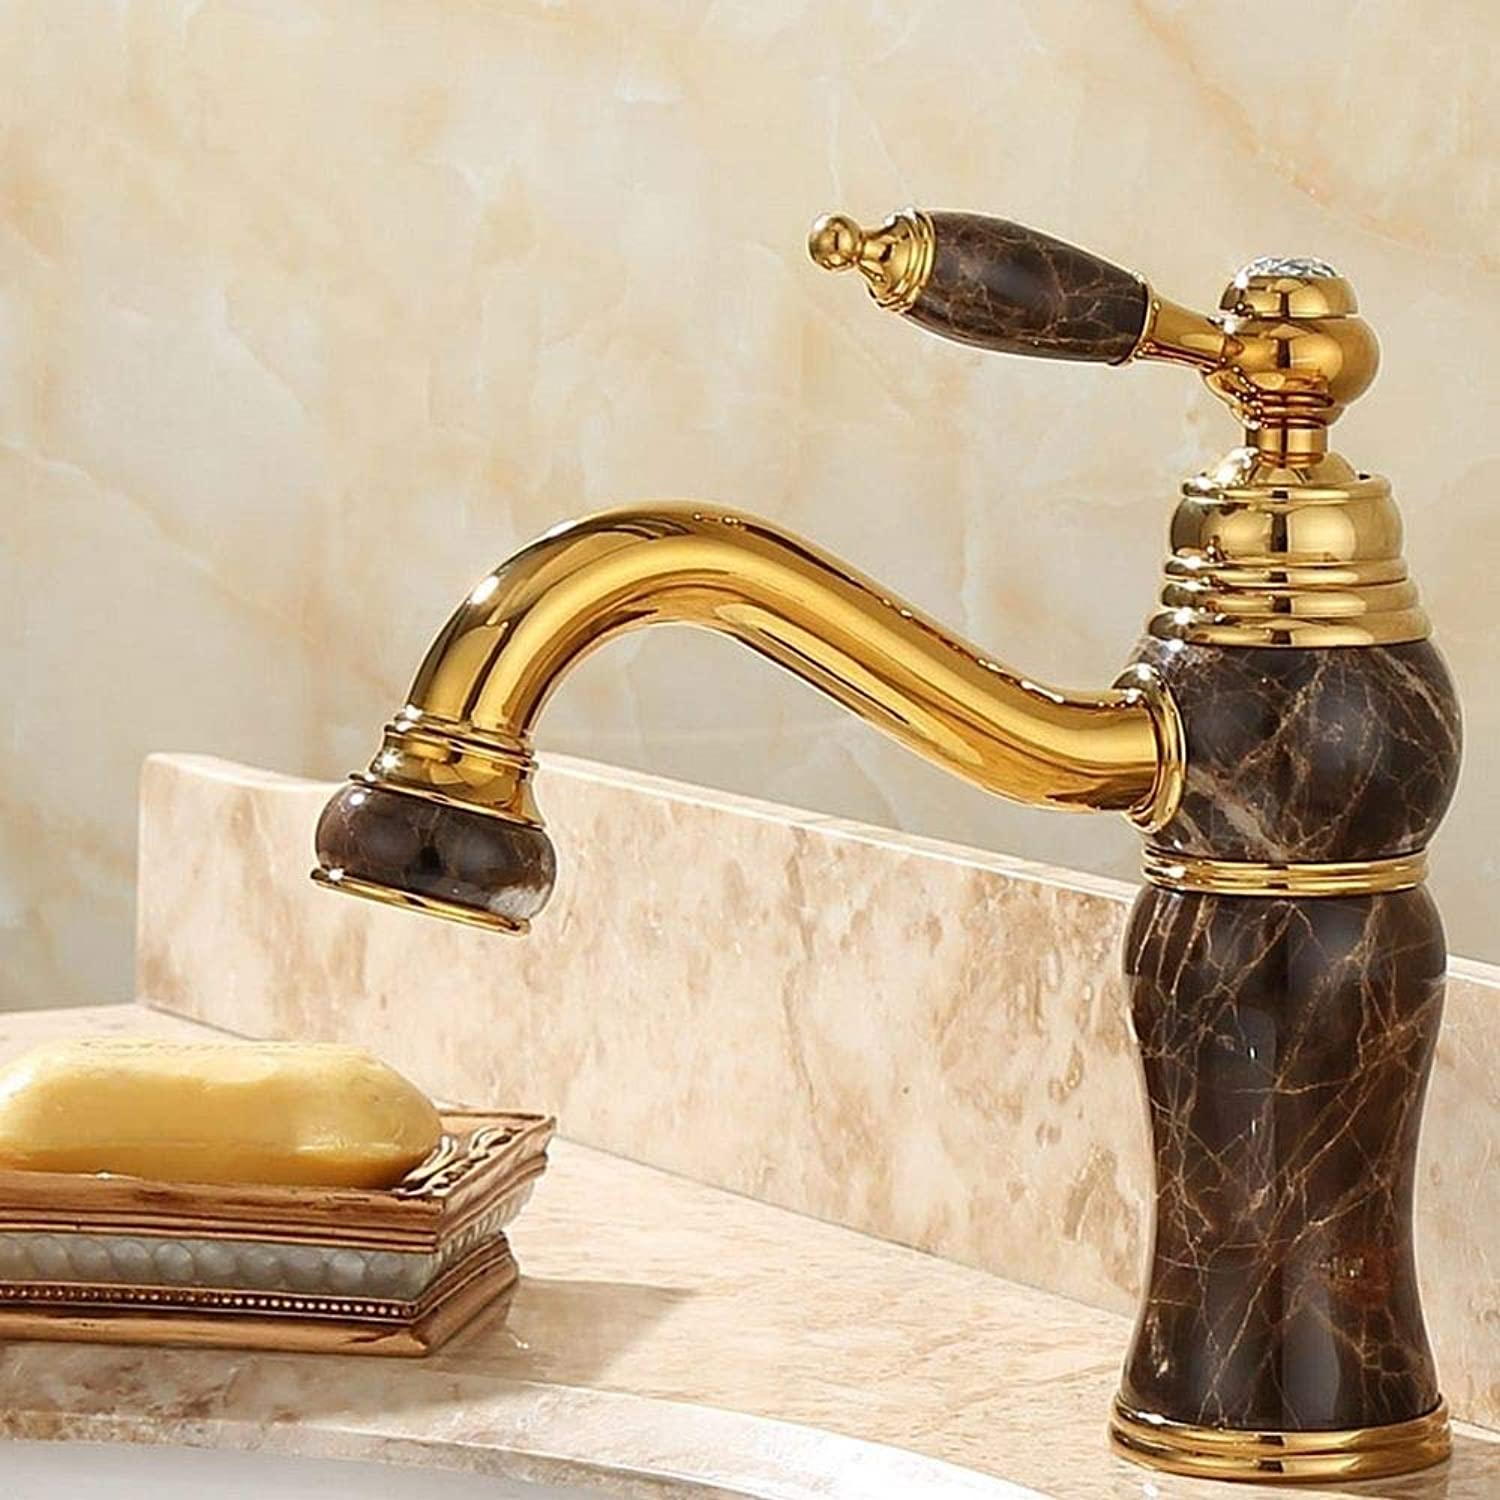 Rmckuva Bathroom Sink Taps Basin Faucet Modern Single Handle Faucet Brass Mixer Curved Mouth Jade Faucet Black - Hz4